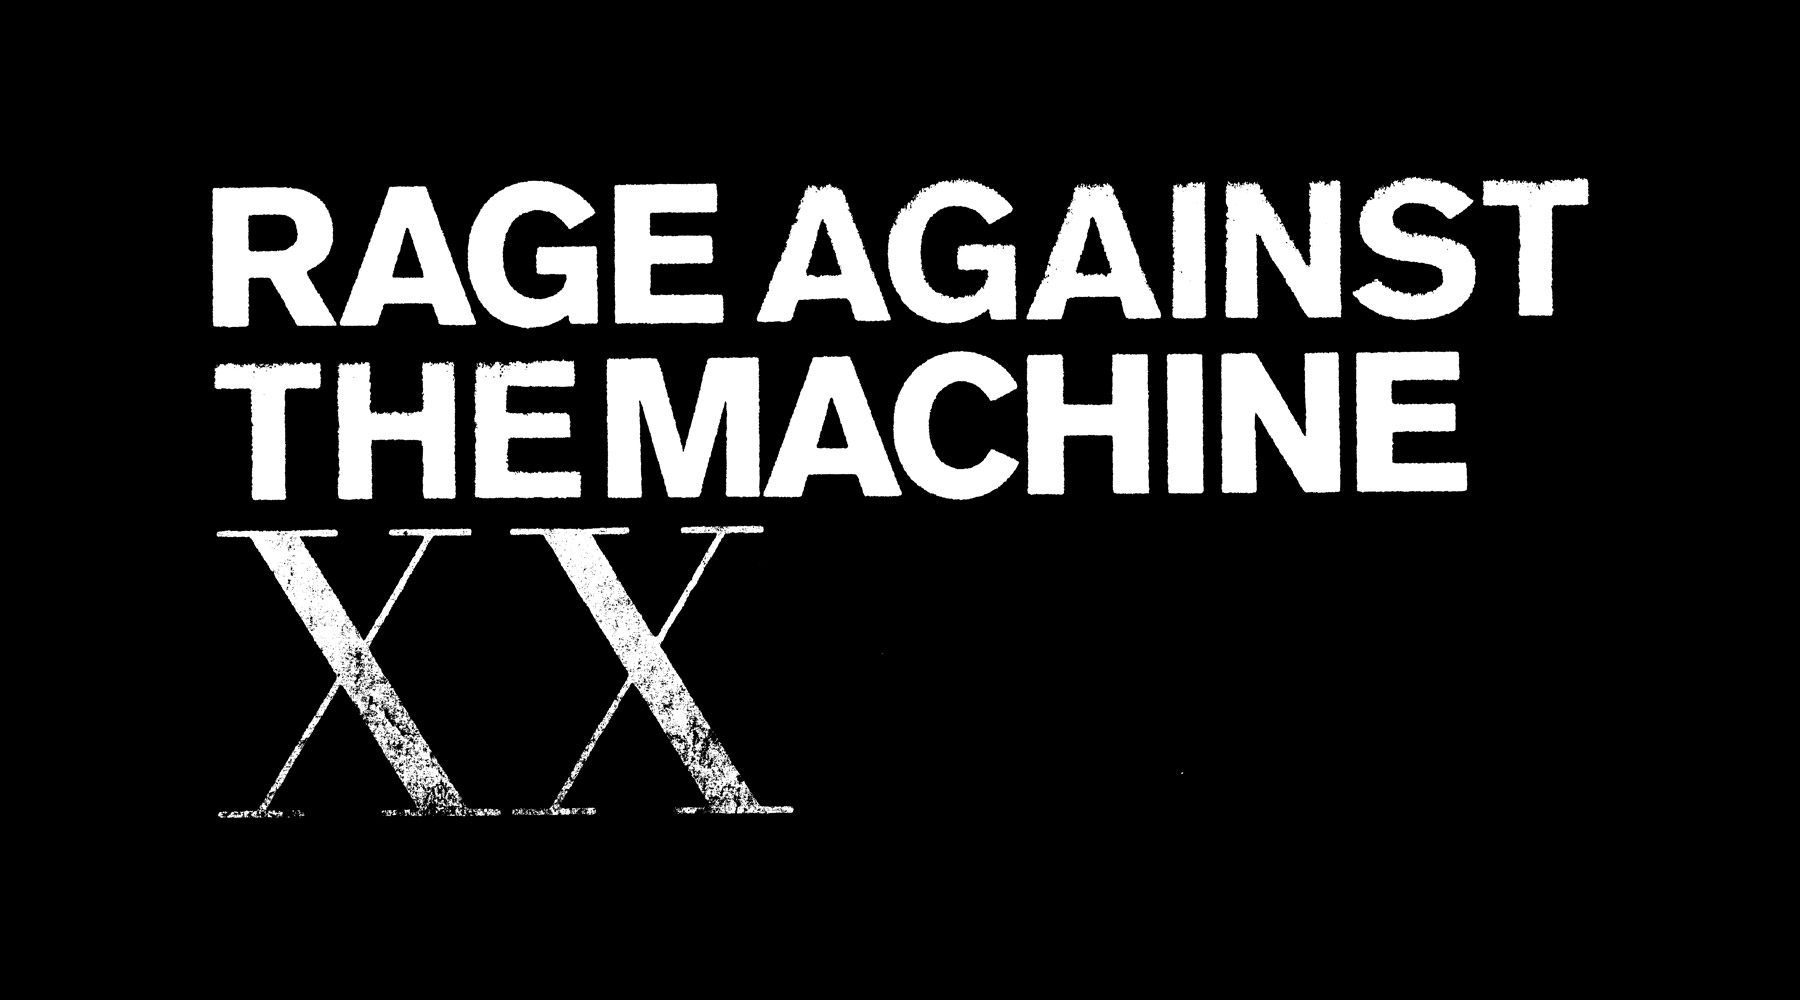 Rage Against Quotes: Quotes About Rage Against The Machine (29 Quotes